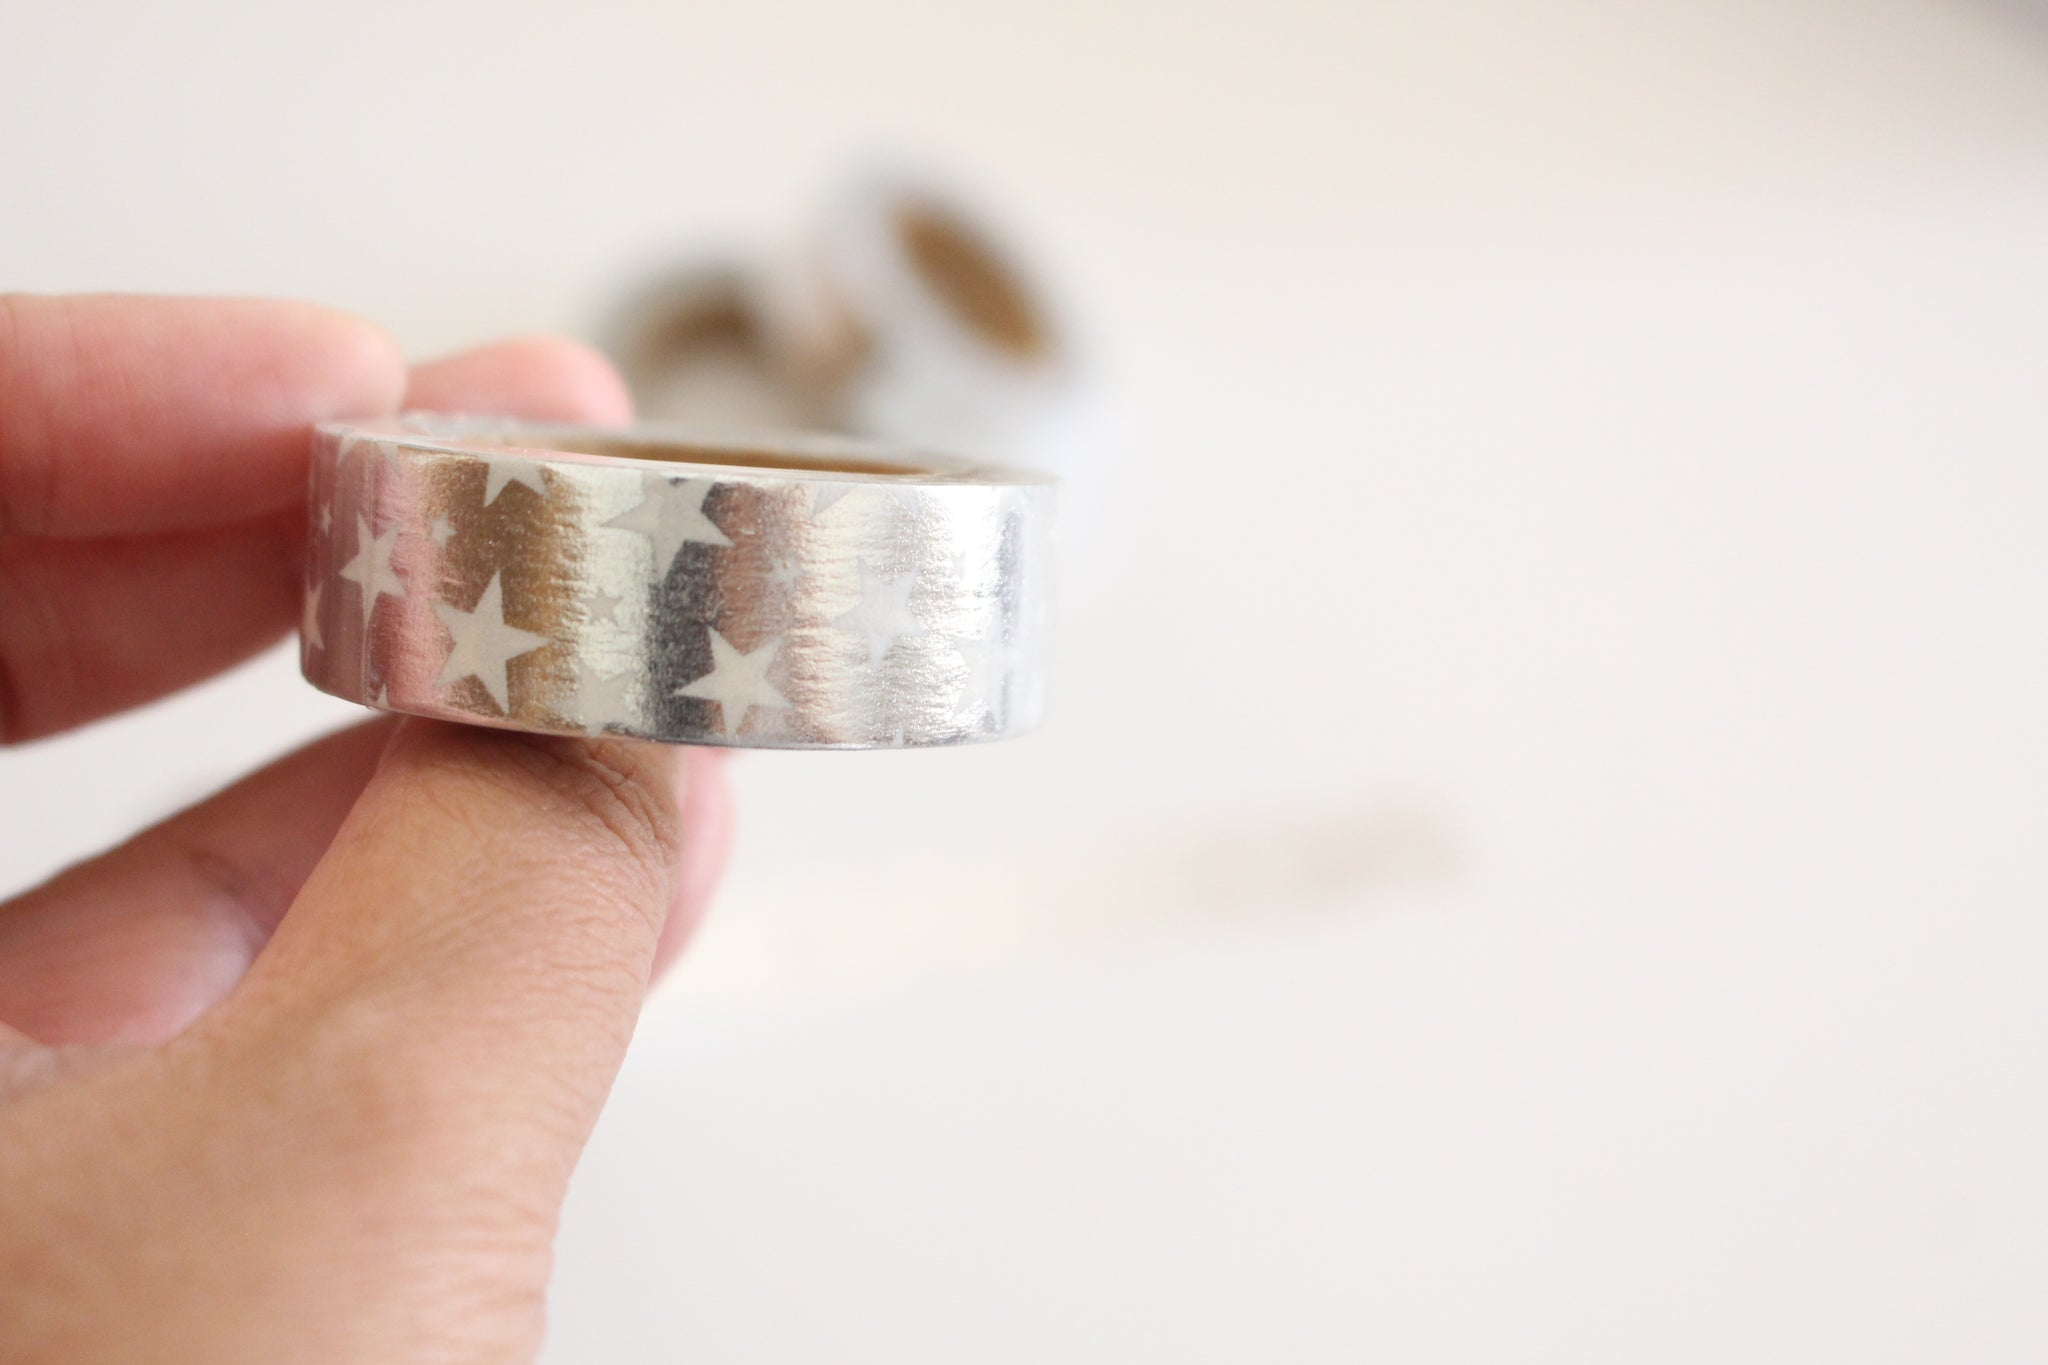 Silver foil with white stars washi tape